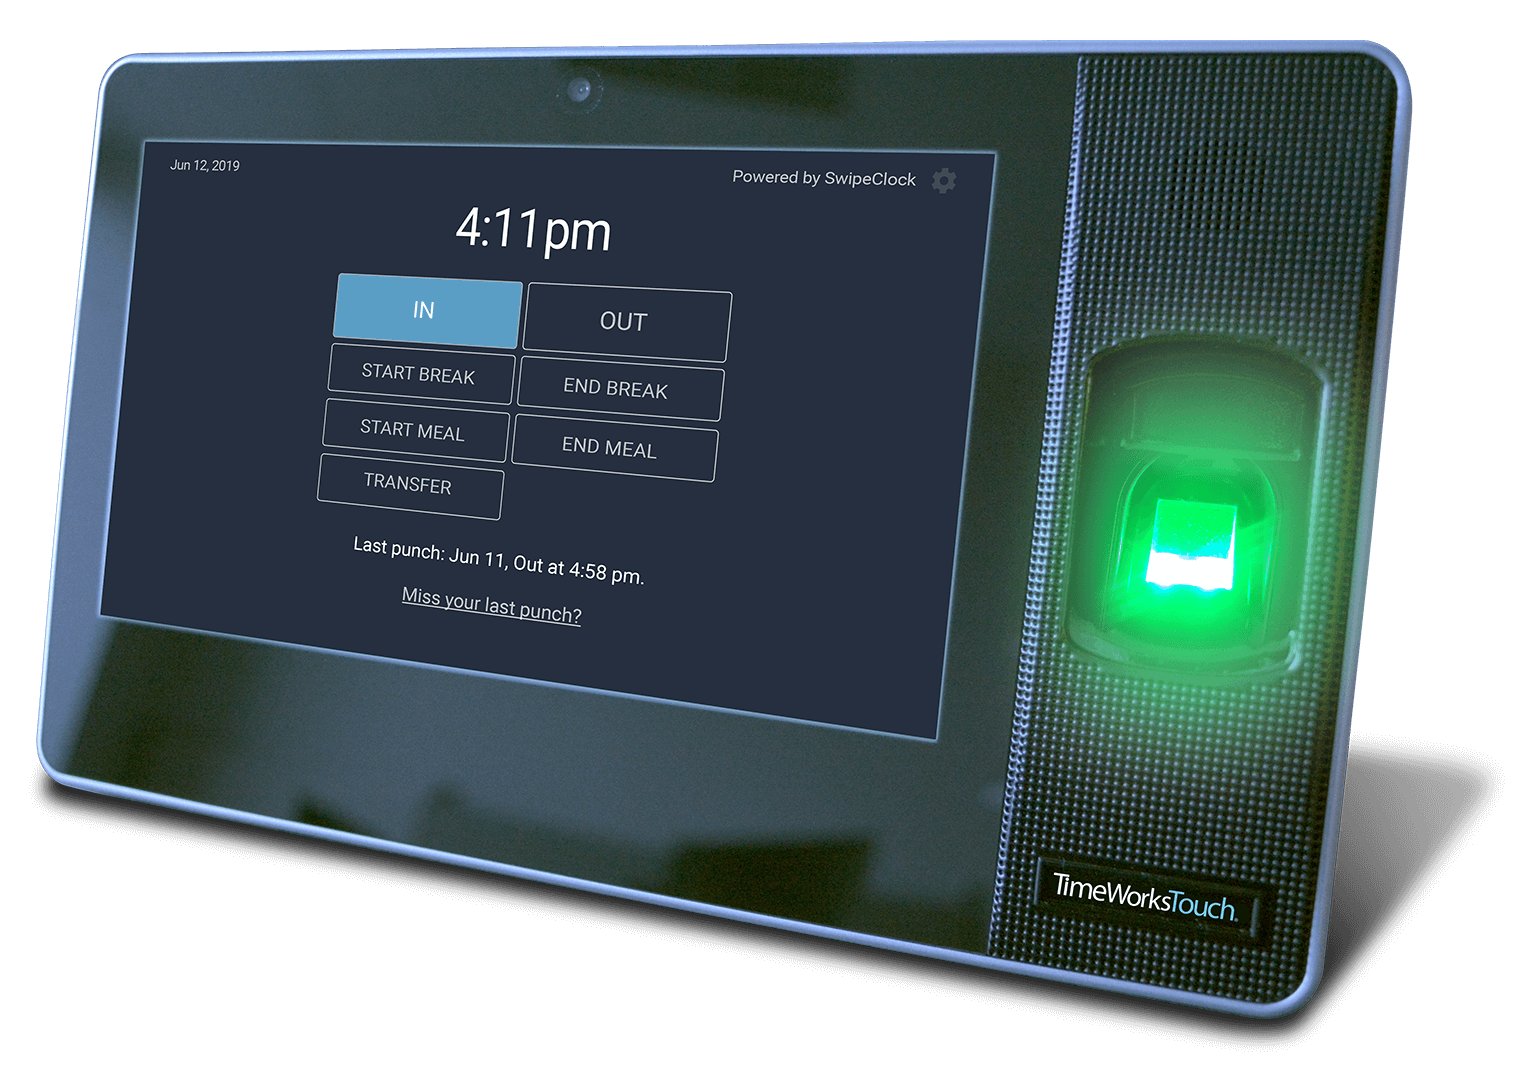 Showcasing the TimeWorksTouch Clock